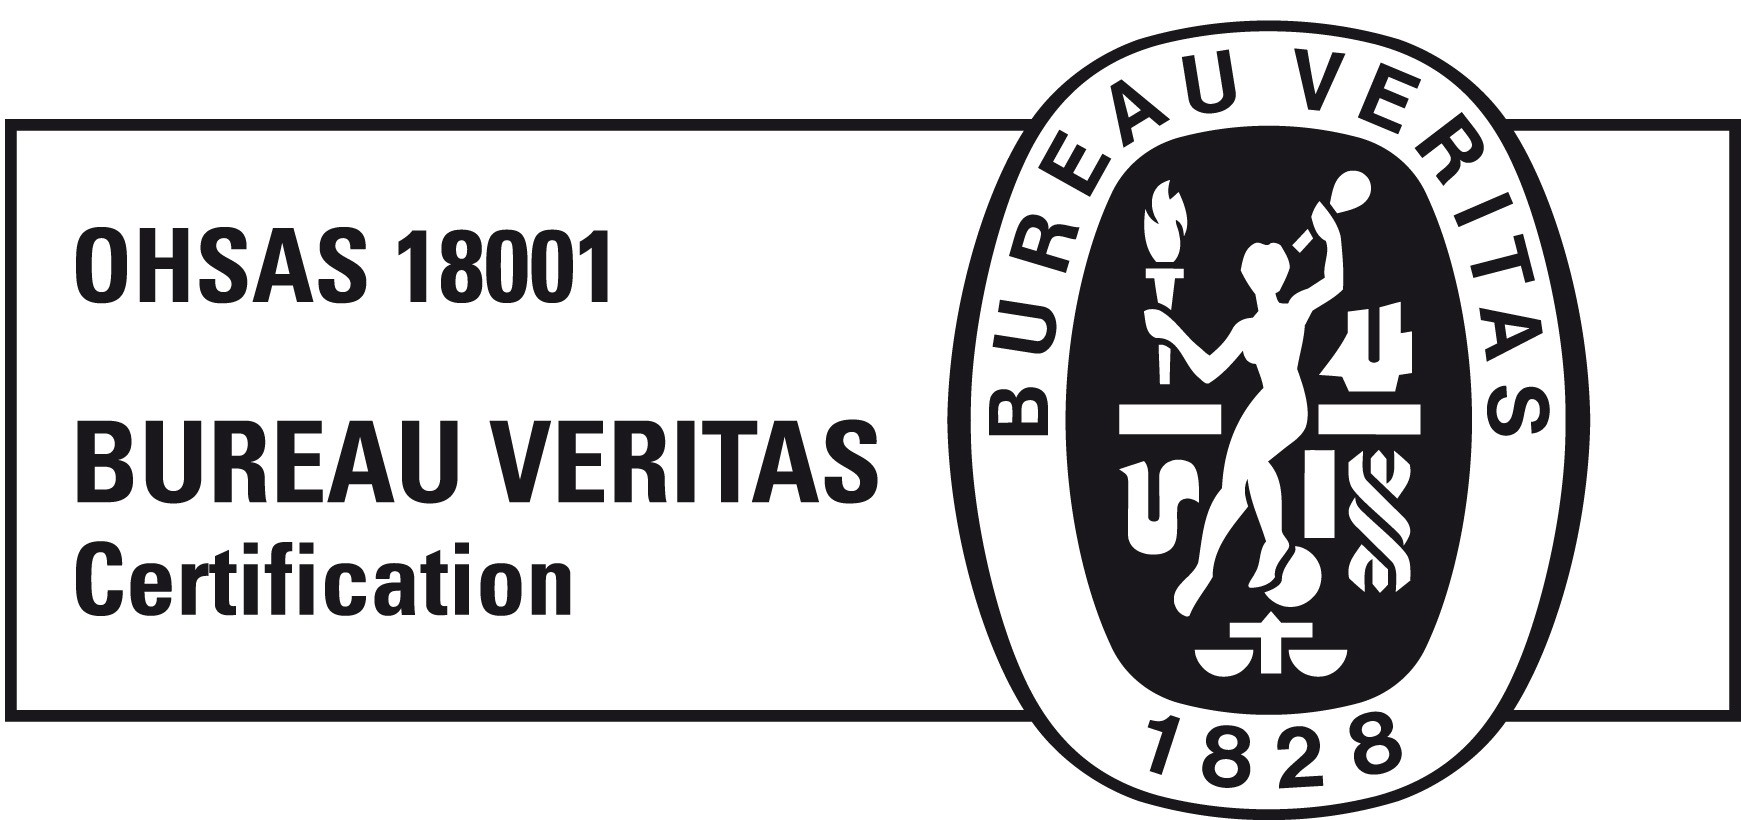 3. Logos ISOOHSAS 18001ALTA RESOLUCIONBlack White versionBV Certification NB OHSAS18001